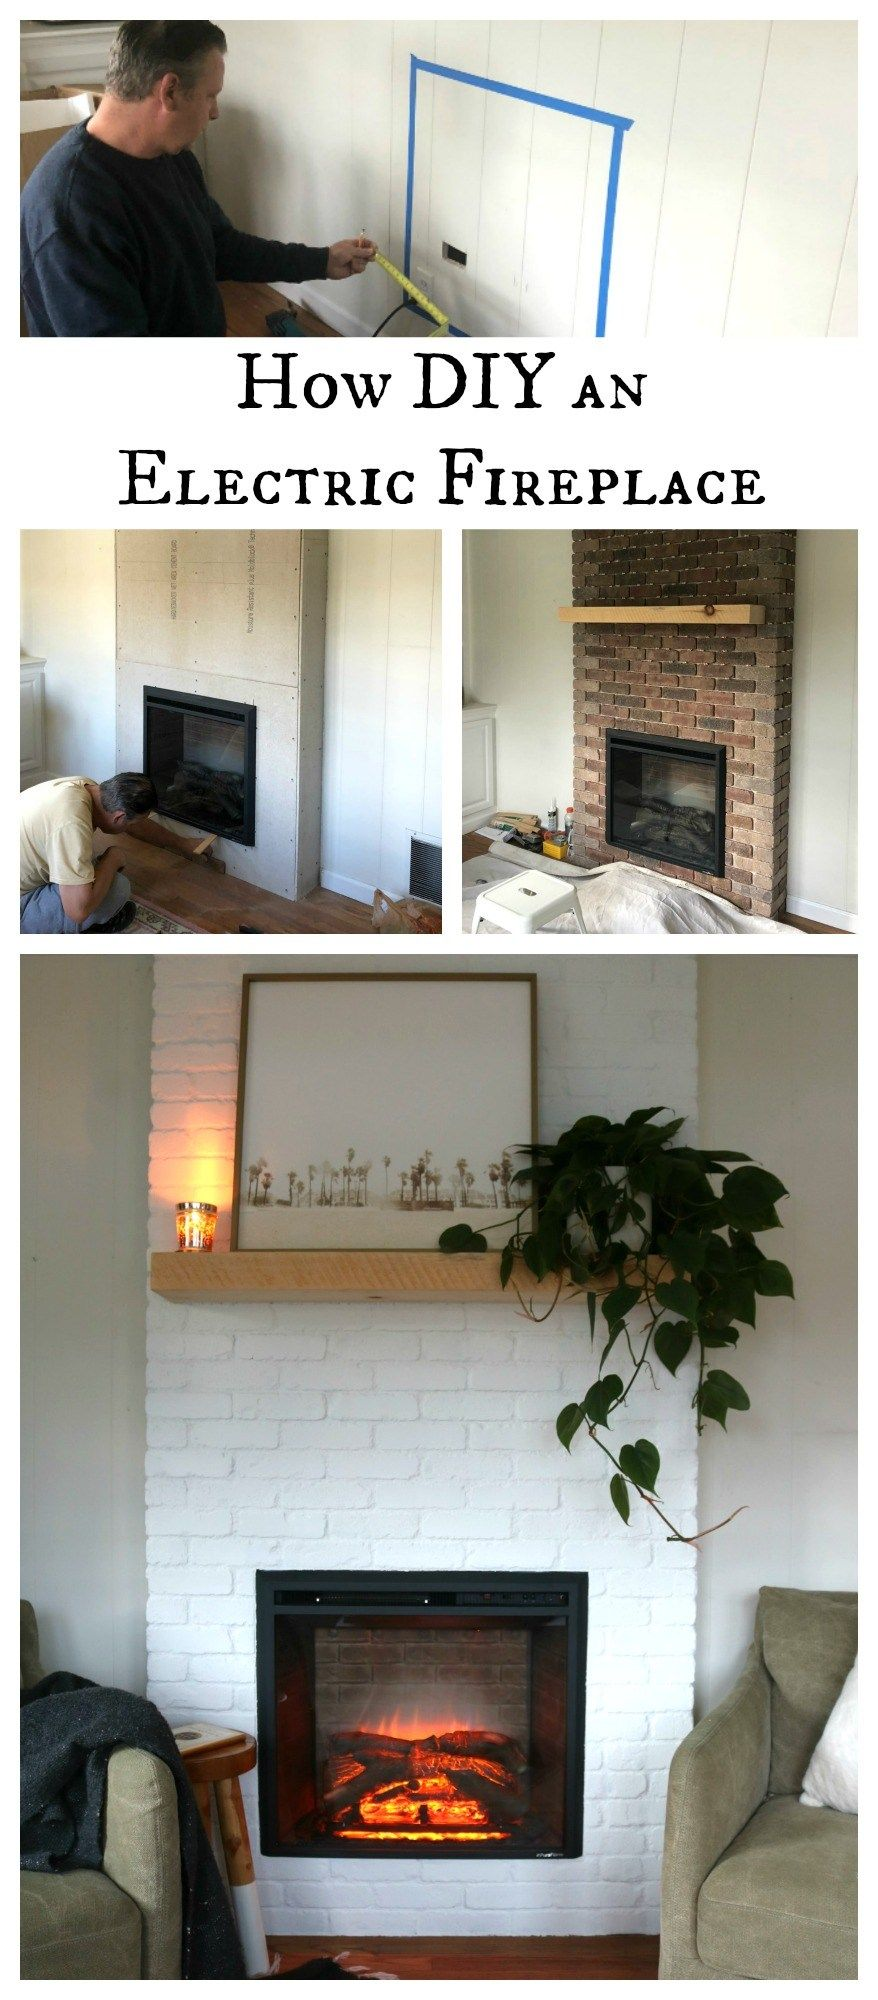 How to DIY an Electric Fireplace- Top Blog Posts | Nesting With Grace | On the blog, I share the full reveal, how much the total price was for us to add this electric fireplace, how long installation took and the why behind the choosing an electric fireplace! #fireplace #diy